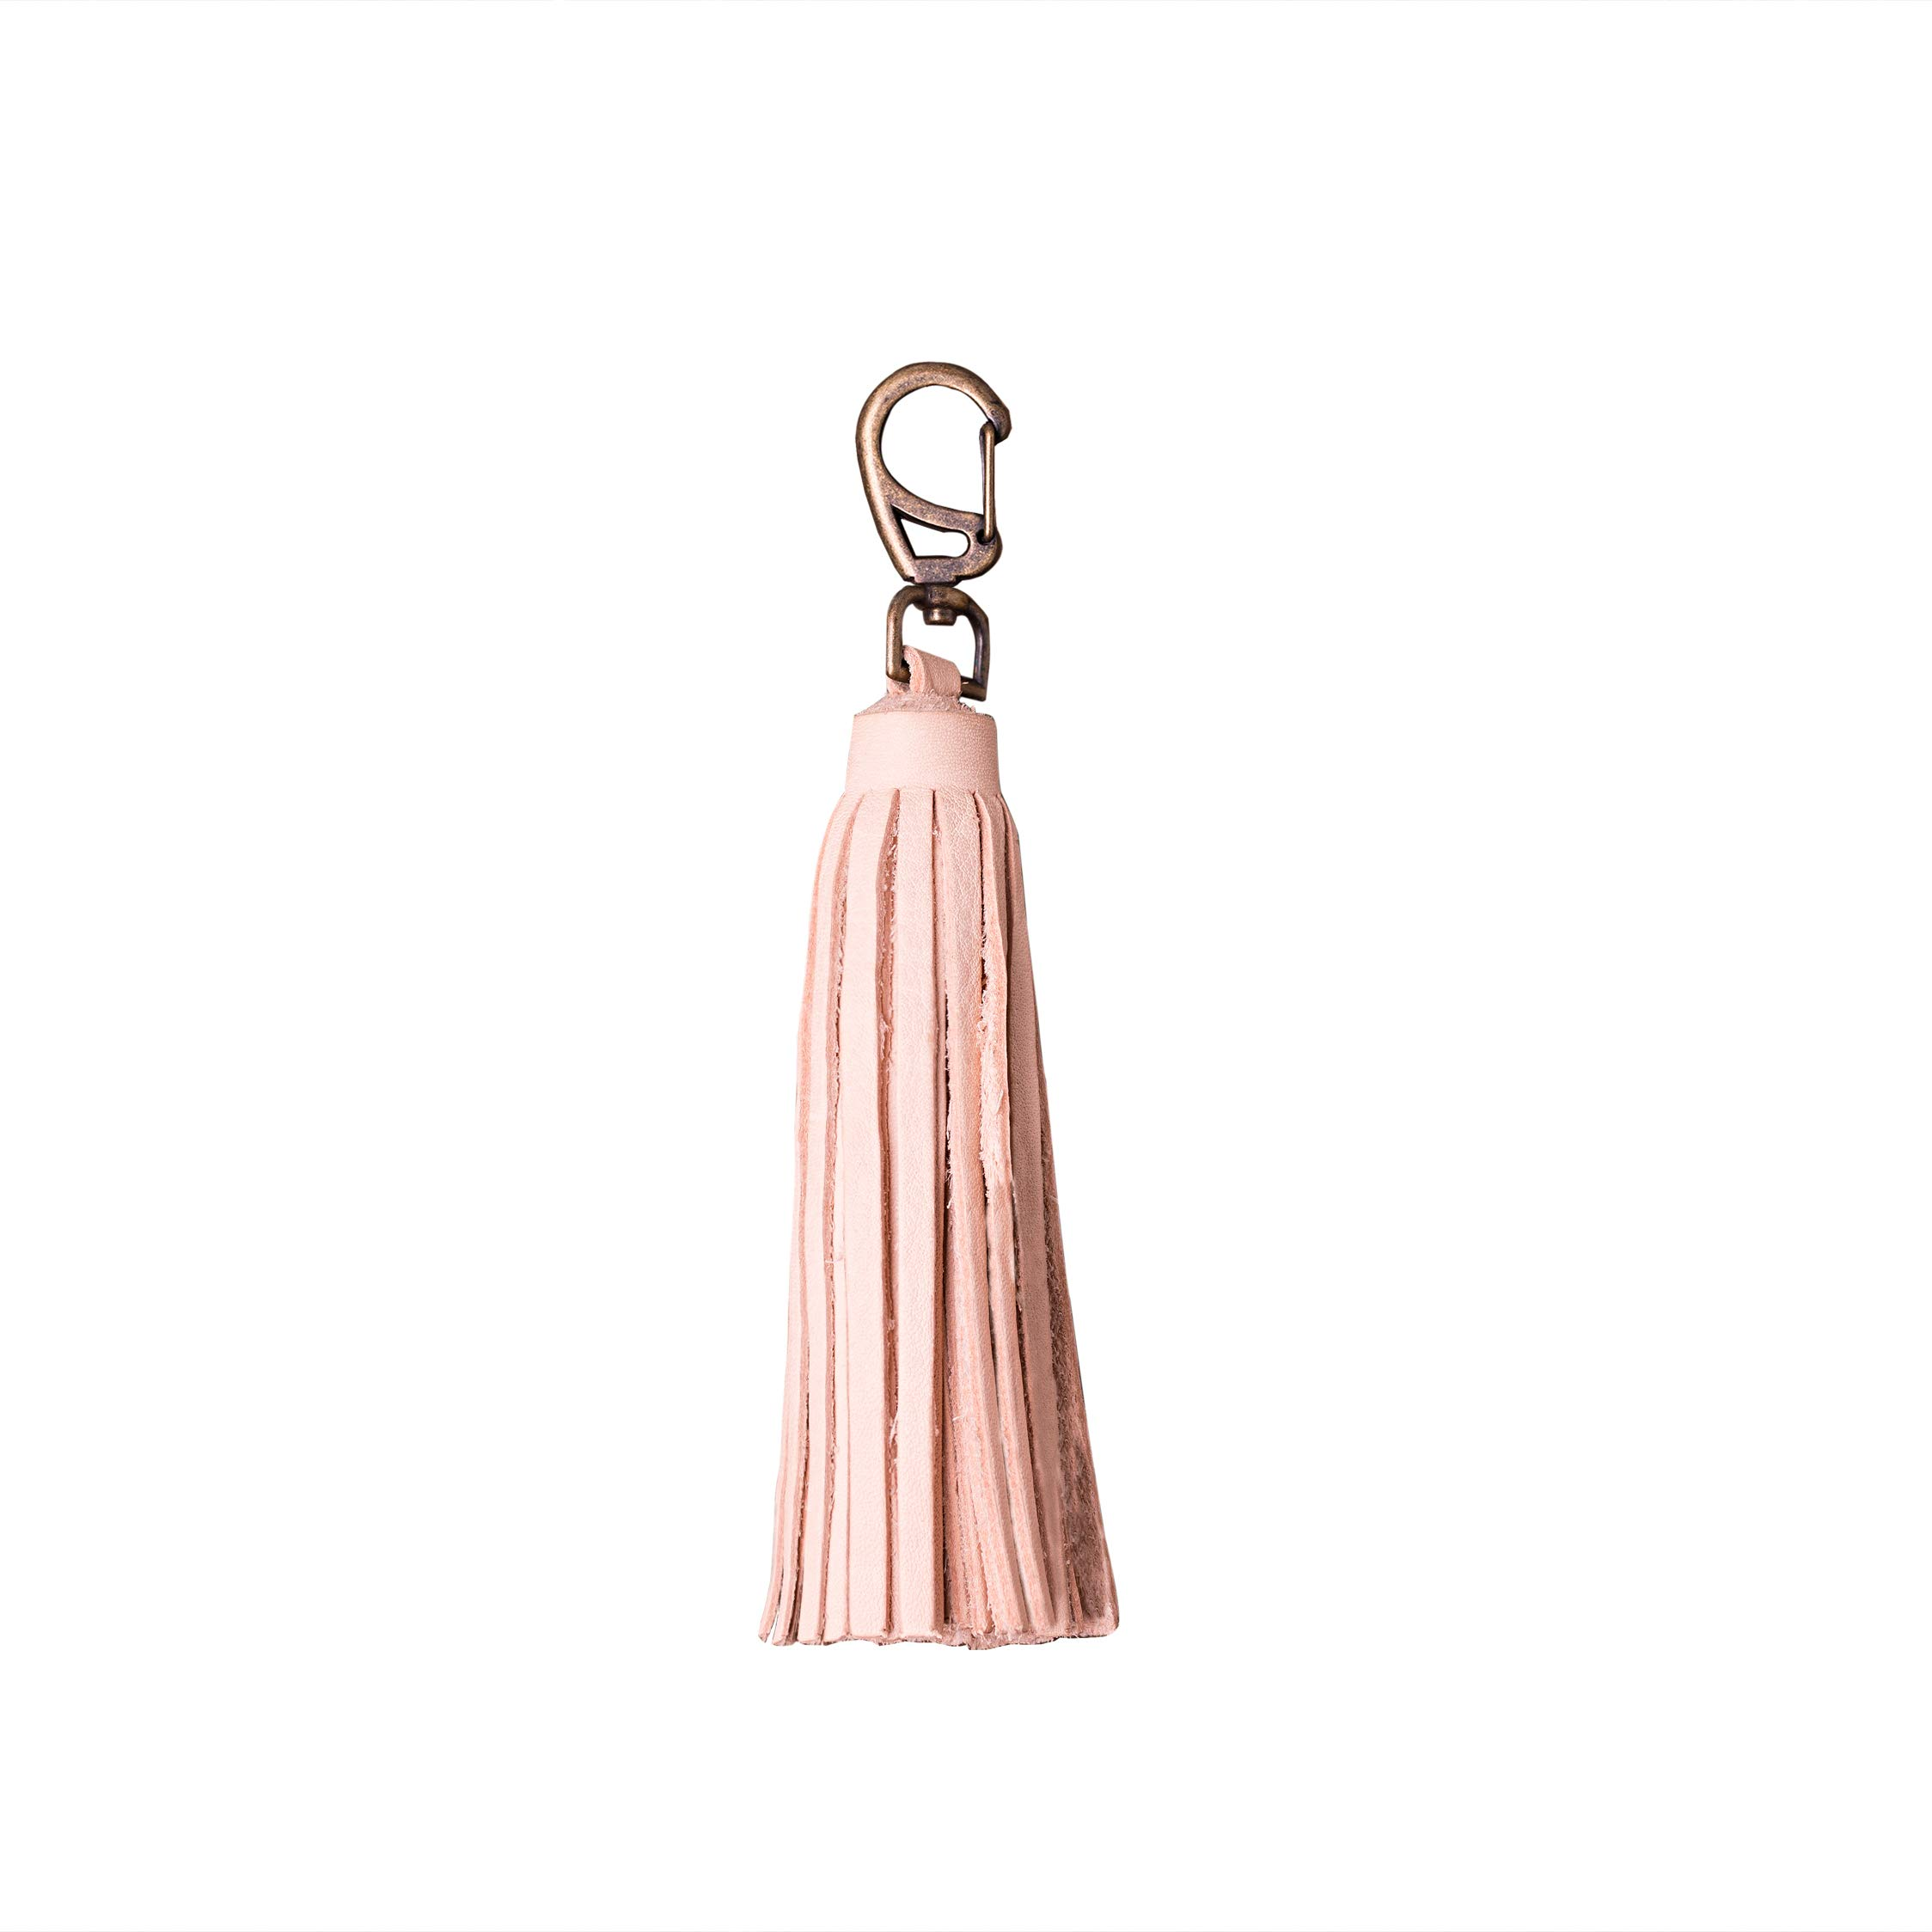 Love 41 Clip on Leather Tassel Includes 41 Year Warranty